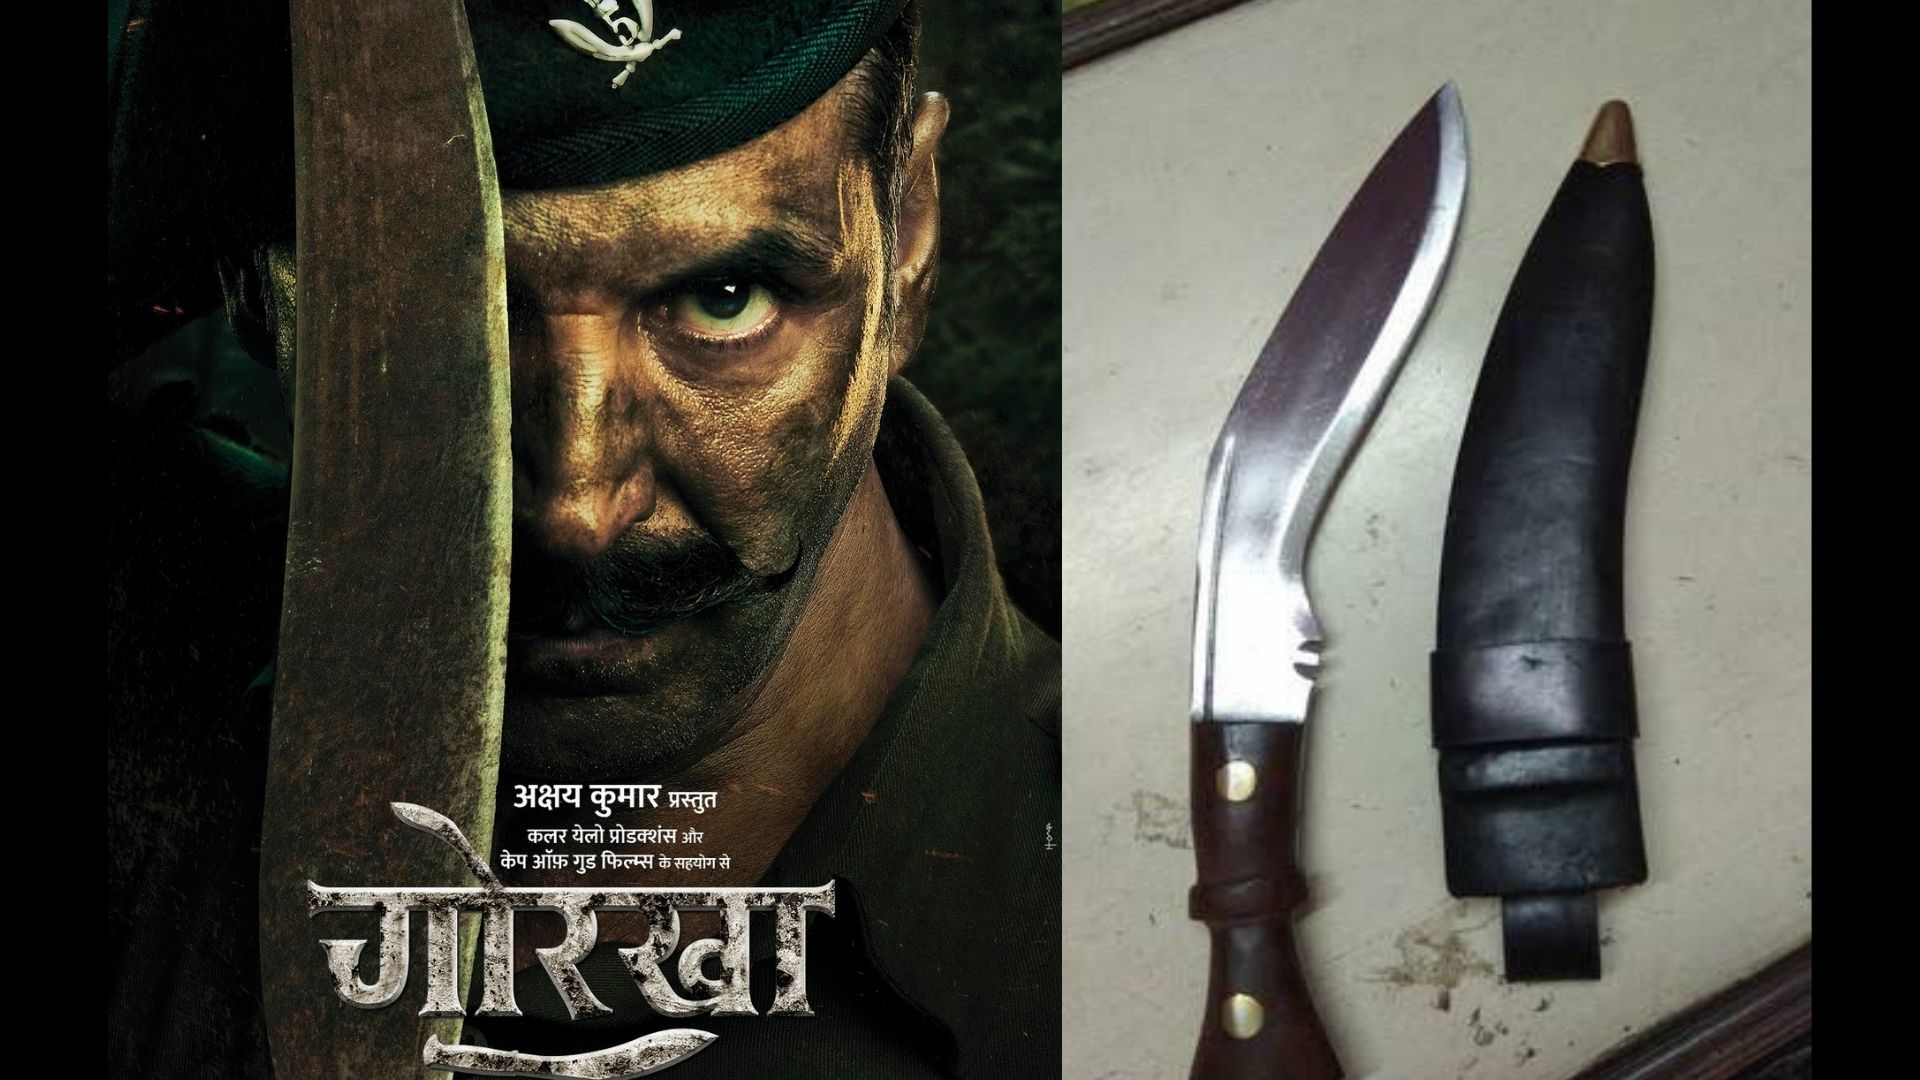 Gorkha: Akshay Kumar Has A Humble Reply To An Ex-Gorkha Who Pointed Out A Mistake